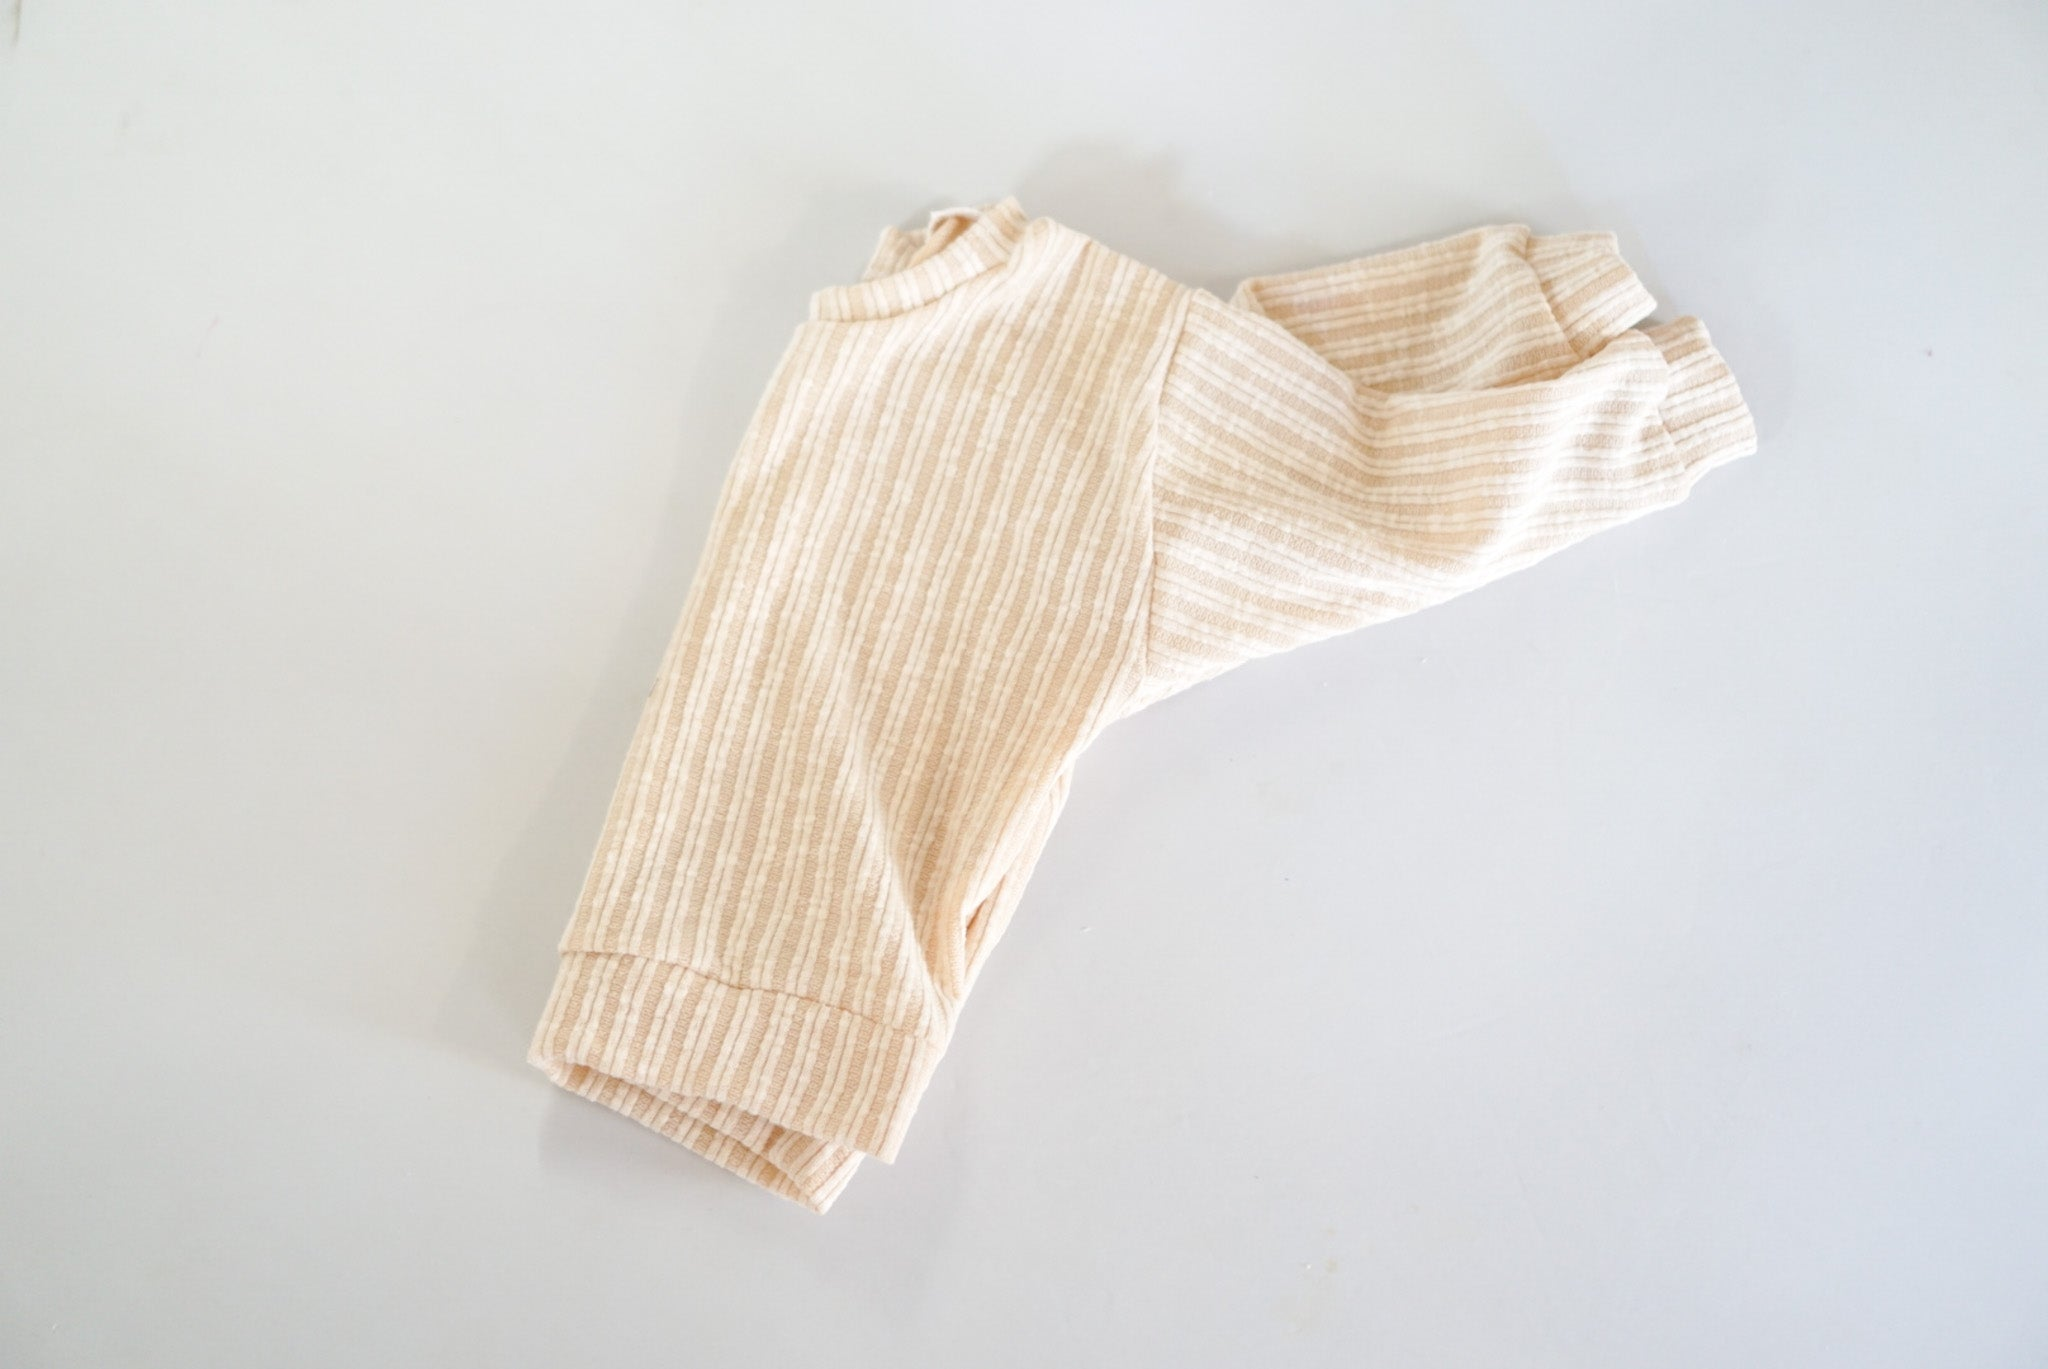 18-24 Oatmeal Ribbed Lounge Sweater